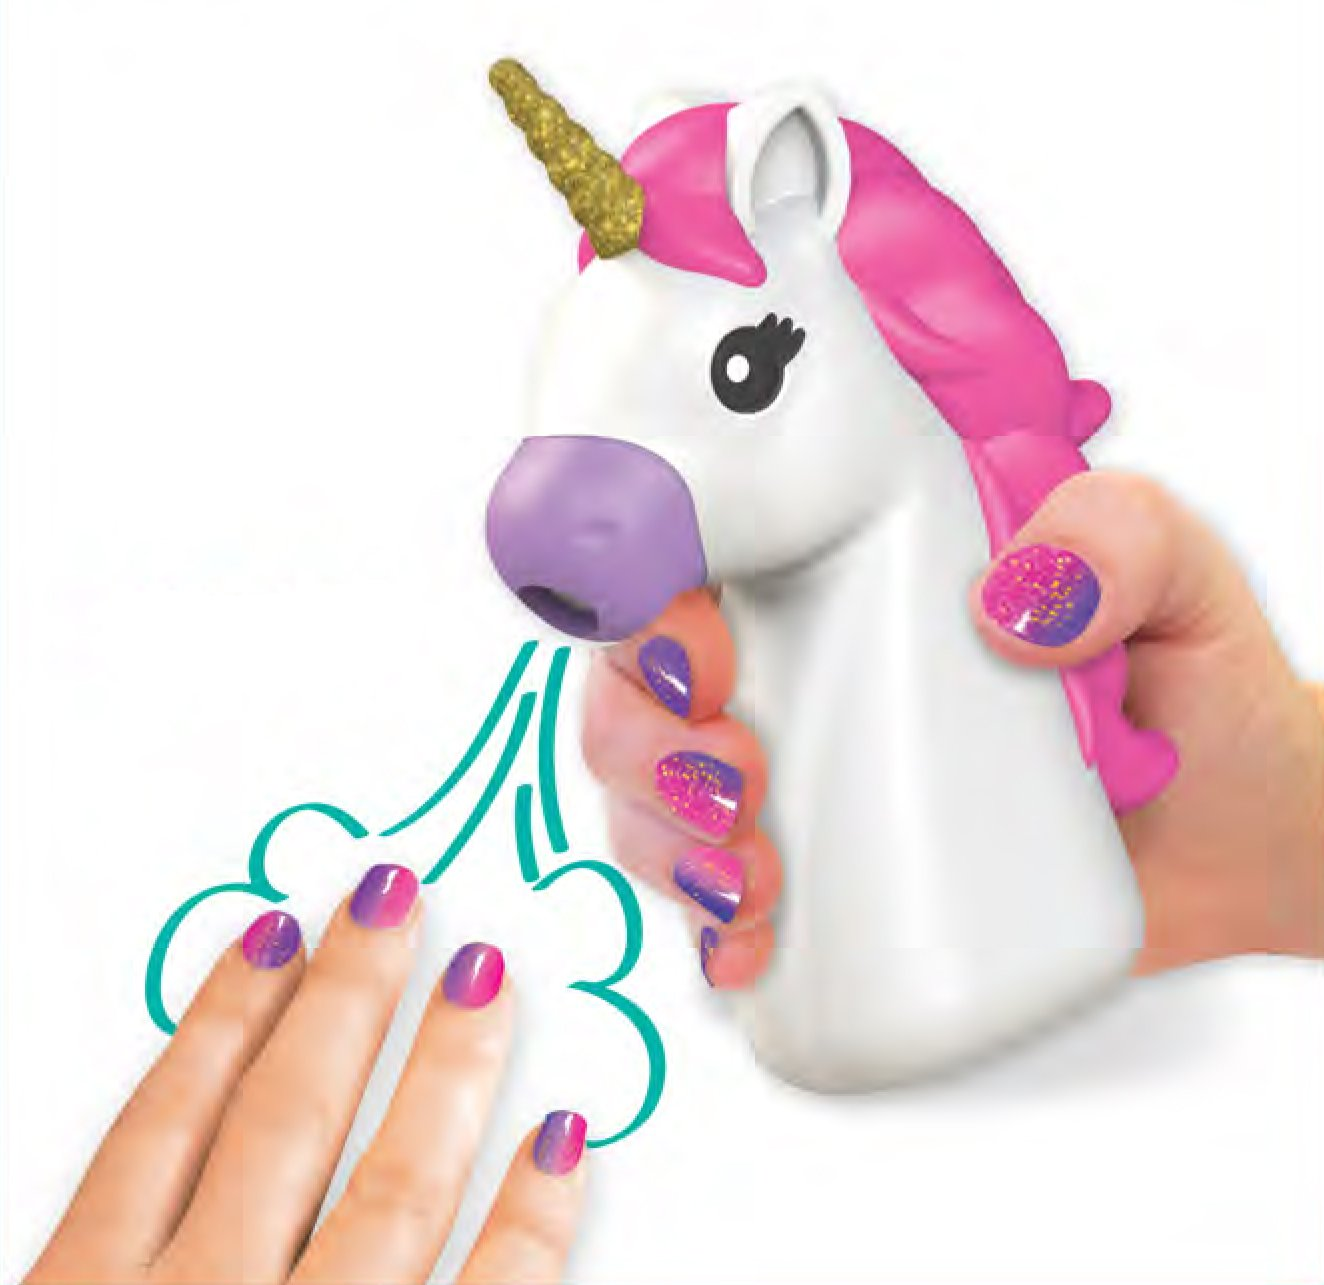 Fashion Angels 12180 Unicorn Dreams Nail Design Super Set Toy (Over 650 Piece), Assorted, Pack of 1 5